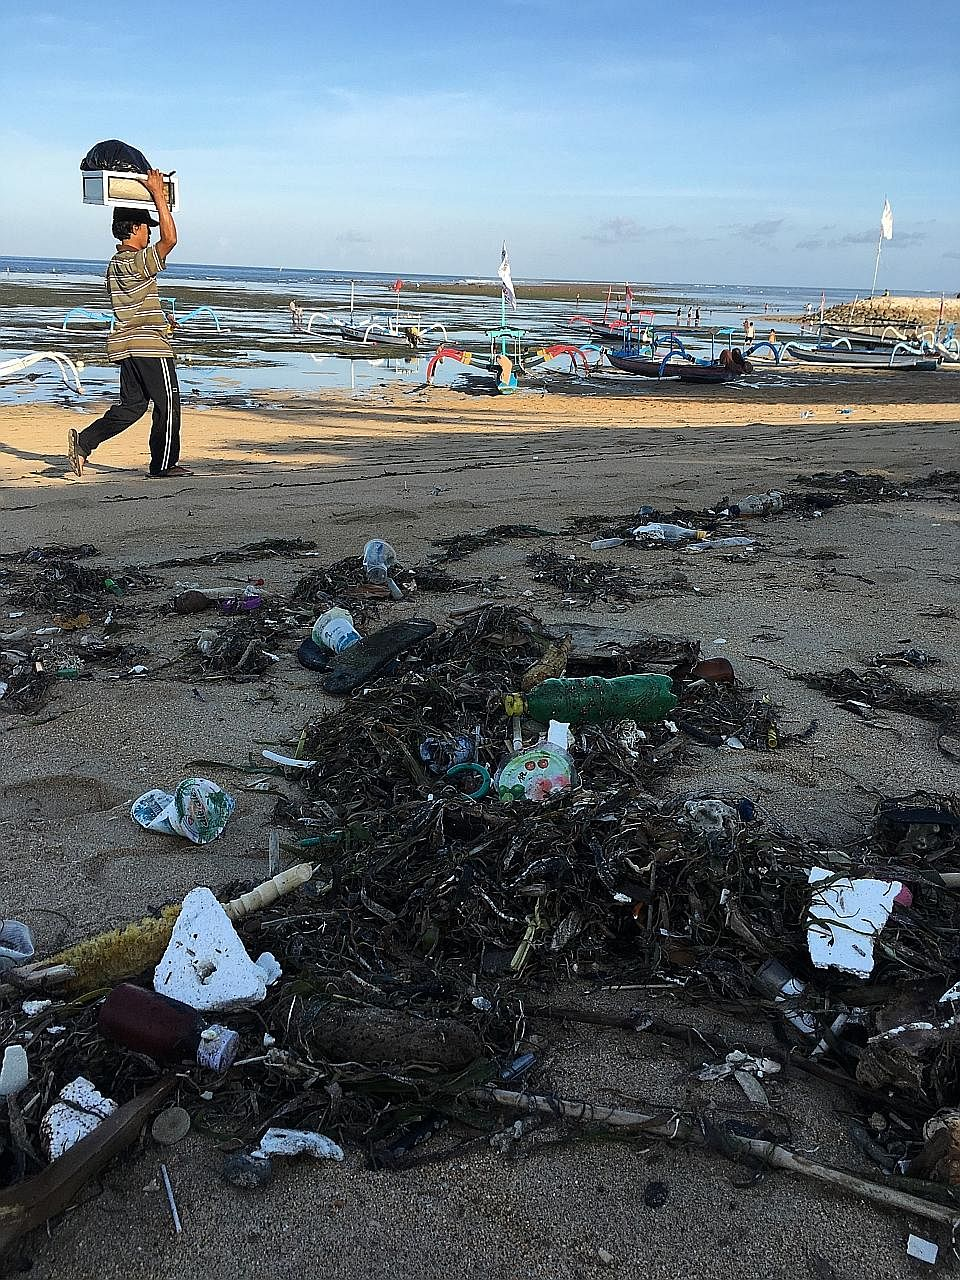 Over 40,000kg of garbage was collected in a single day in Bali's Biggest Beach Clean-up campaign earlier this year. The critical challenge for tourism authorities in South-east Asia is to ensure that unchecked economic development does not threaten t